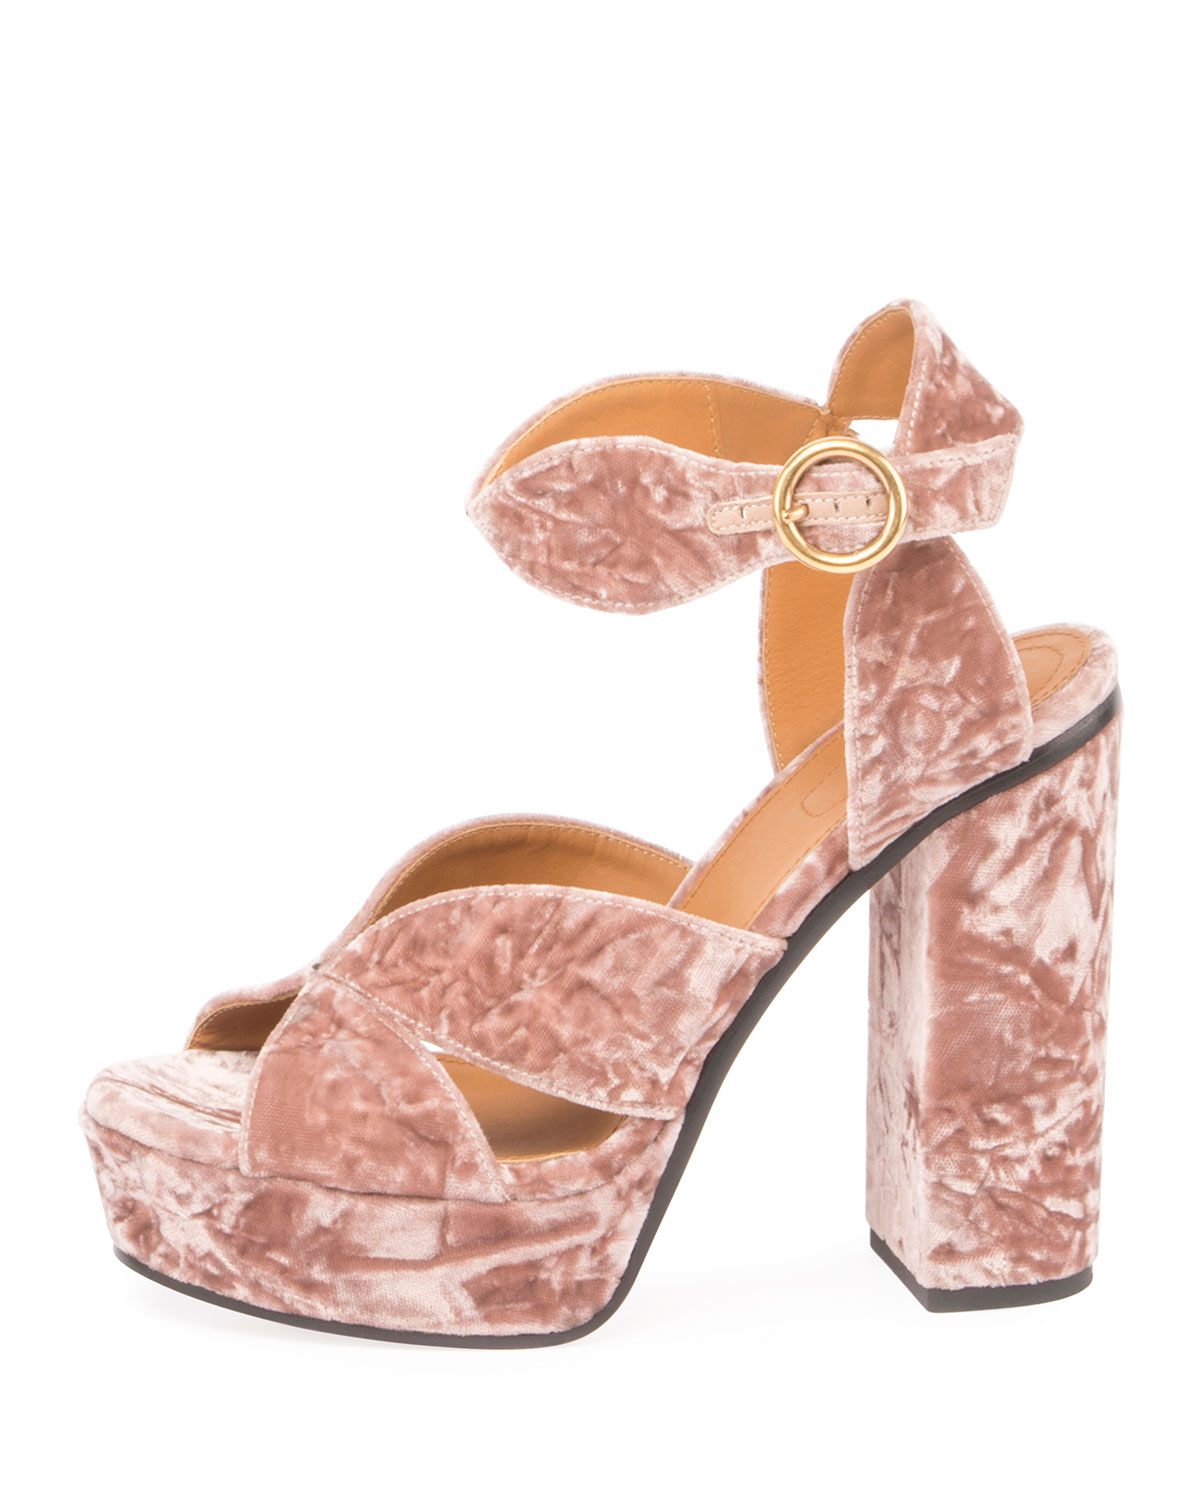 High Quality Buy Online Chloé Graphic Leaves velvet sandals Release Dates Cheap Online Pay With Visa Sale Online Cheap Sneakernews M0NMZ0Wsr